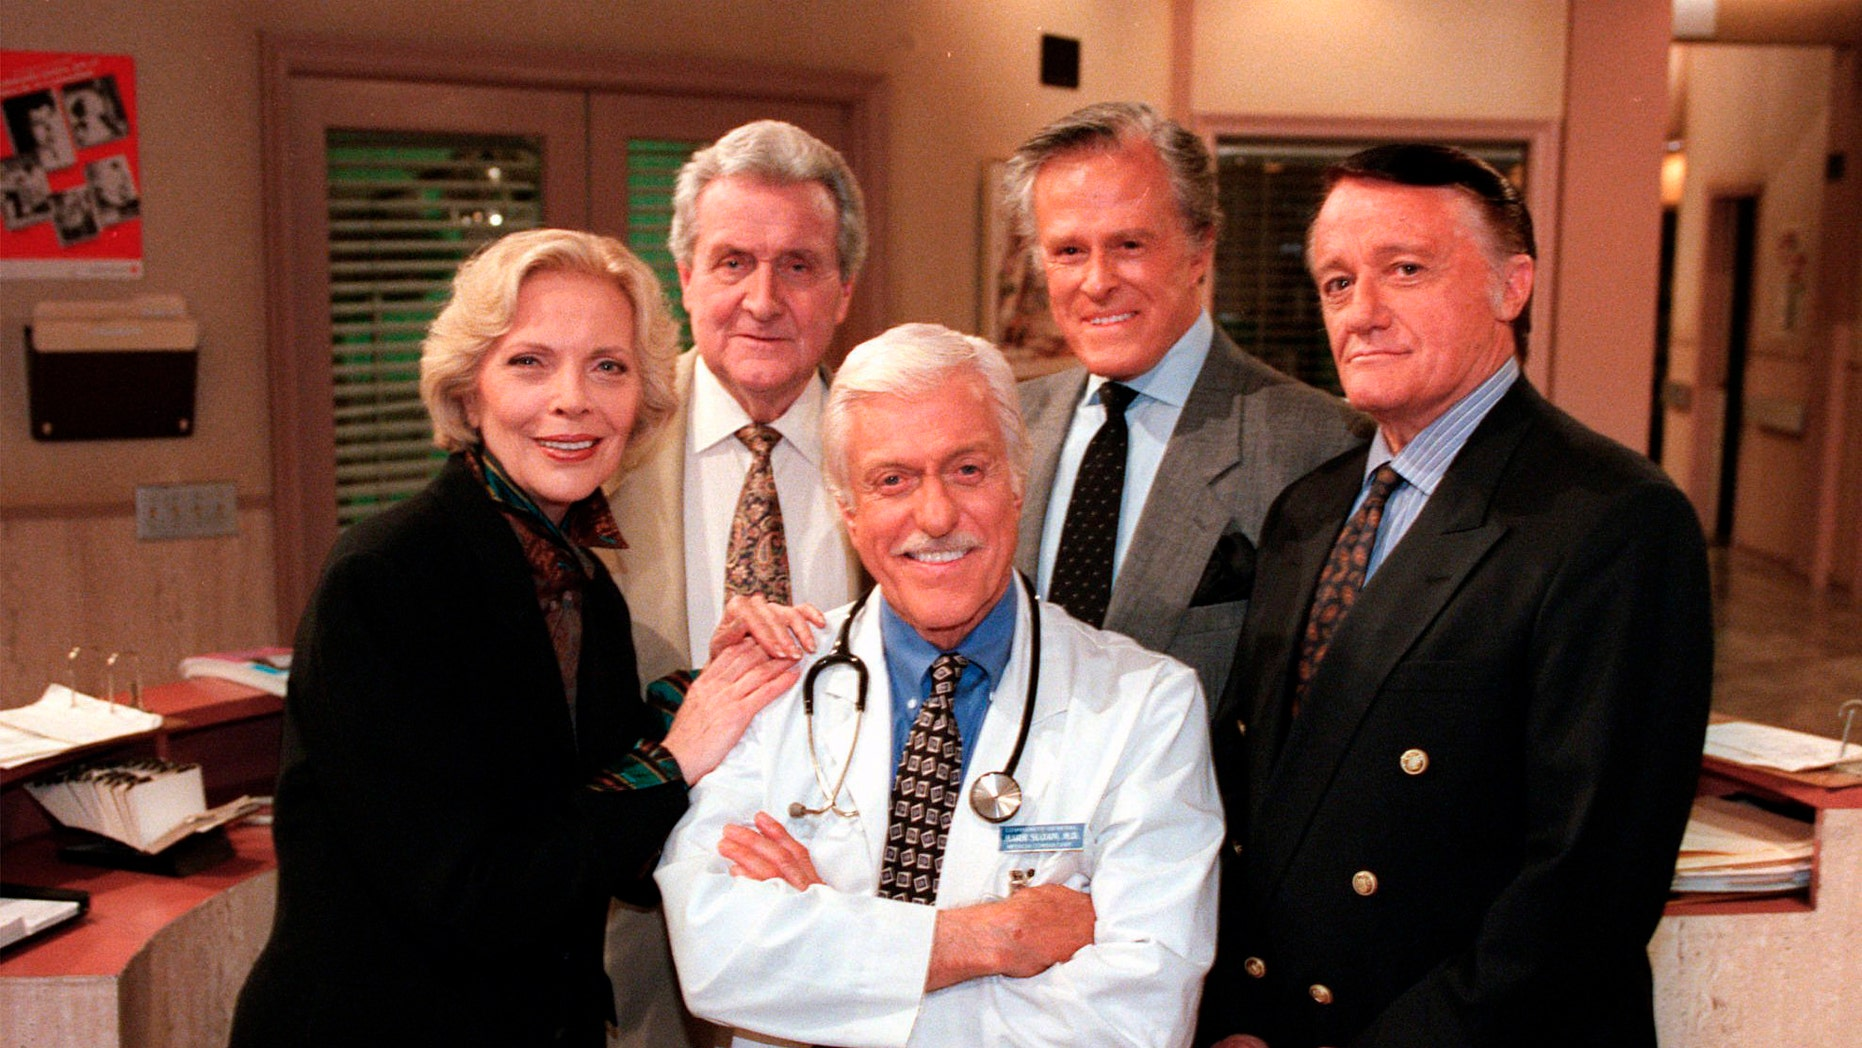 "FILE - In this Oct. 16, 1997 file photo, Dick Van Dyke, center, poses with his guest stars, from left, Barbara Bain, Patrick Macnee, Robert Culp and Robert Vaughn, on ""Diagnosis Murder"" during a break on the set of the CBS series in the Van Nuys section of Los Angeles."